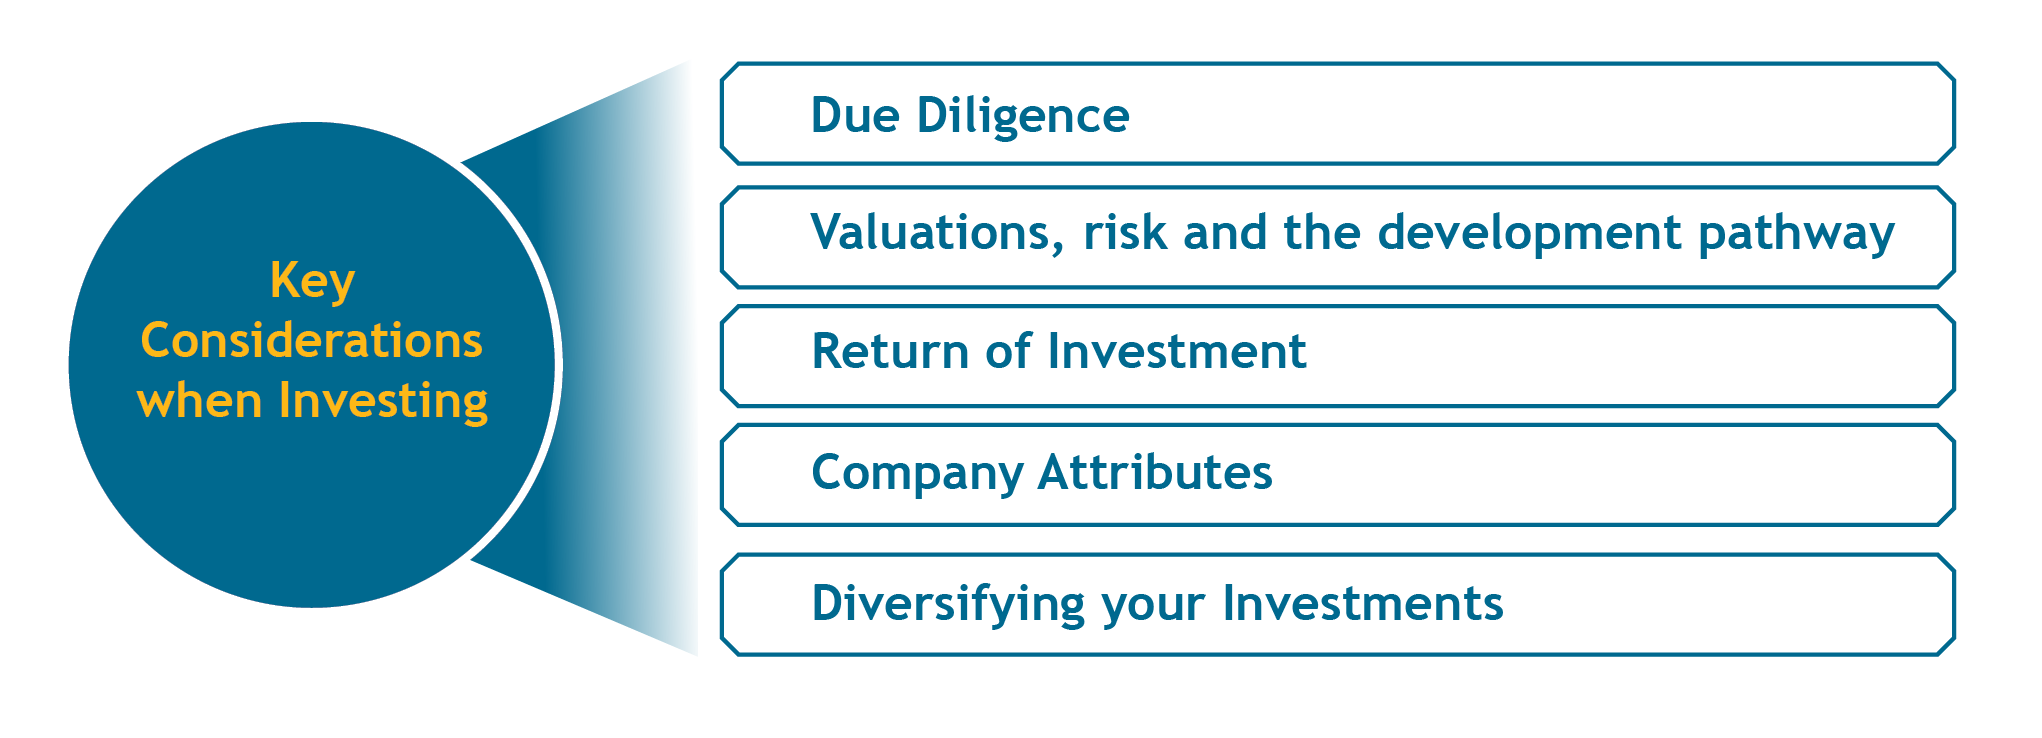 Key considerations when investing